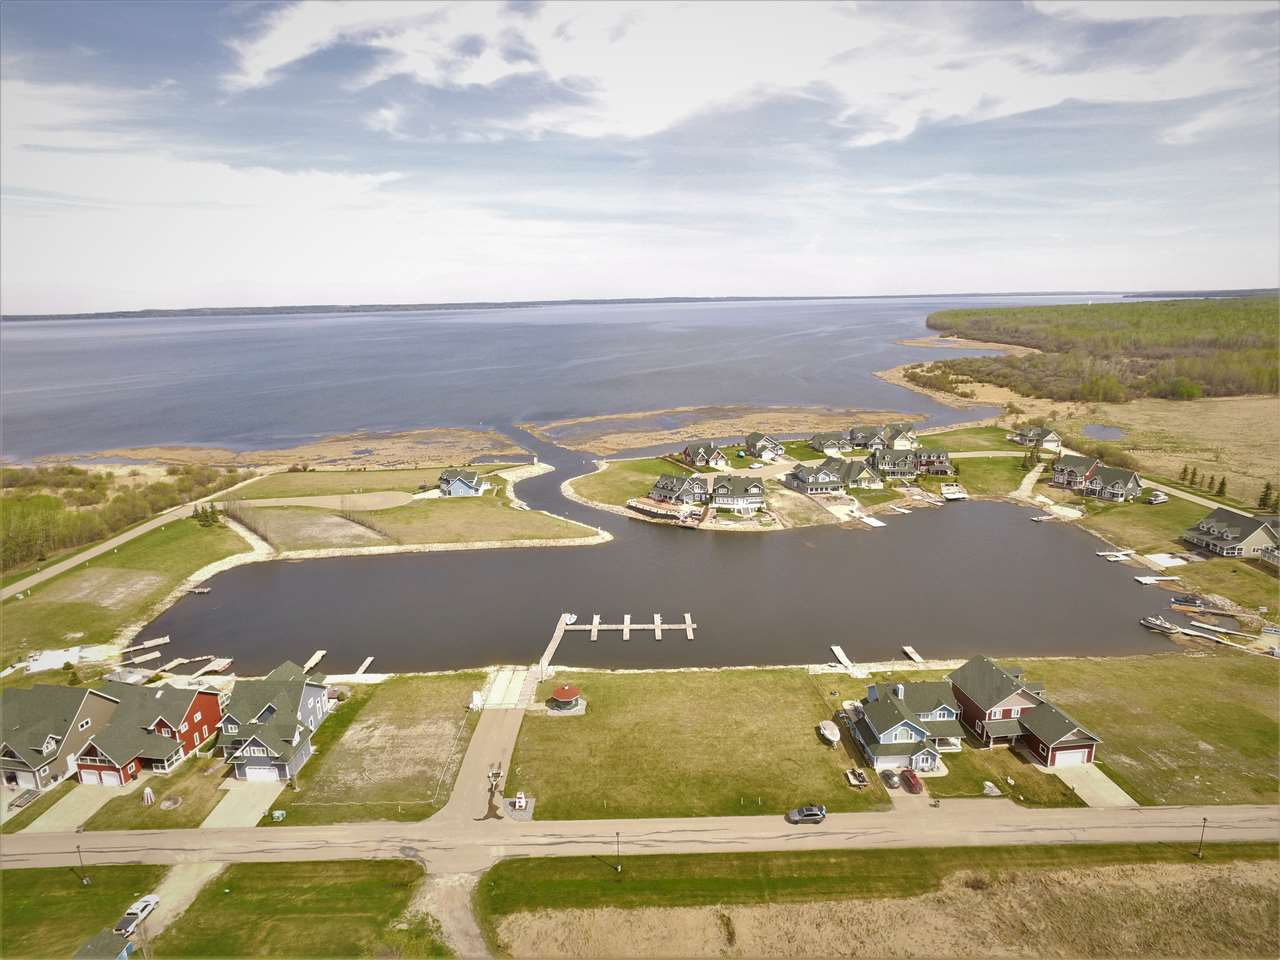 Welcome to Sunset Harbour! This Condo community is located on the West Tip of Pigeon Lake, with architectural design to meet and exceed your Expectations. Cape Cod Style Marina lifestyle with full access to Pigeon Lake that entertains full year around activities and Sport. Harbour Access and docking system as well as Municipal Water and Sewer, Paved Streets, all services to the Property Line. This lot is a South facing Large Pie shaped lot to enjoy full view of the Harbour. No Time limit to Build and applicable GST will apply.